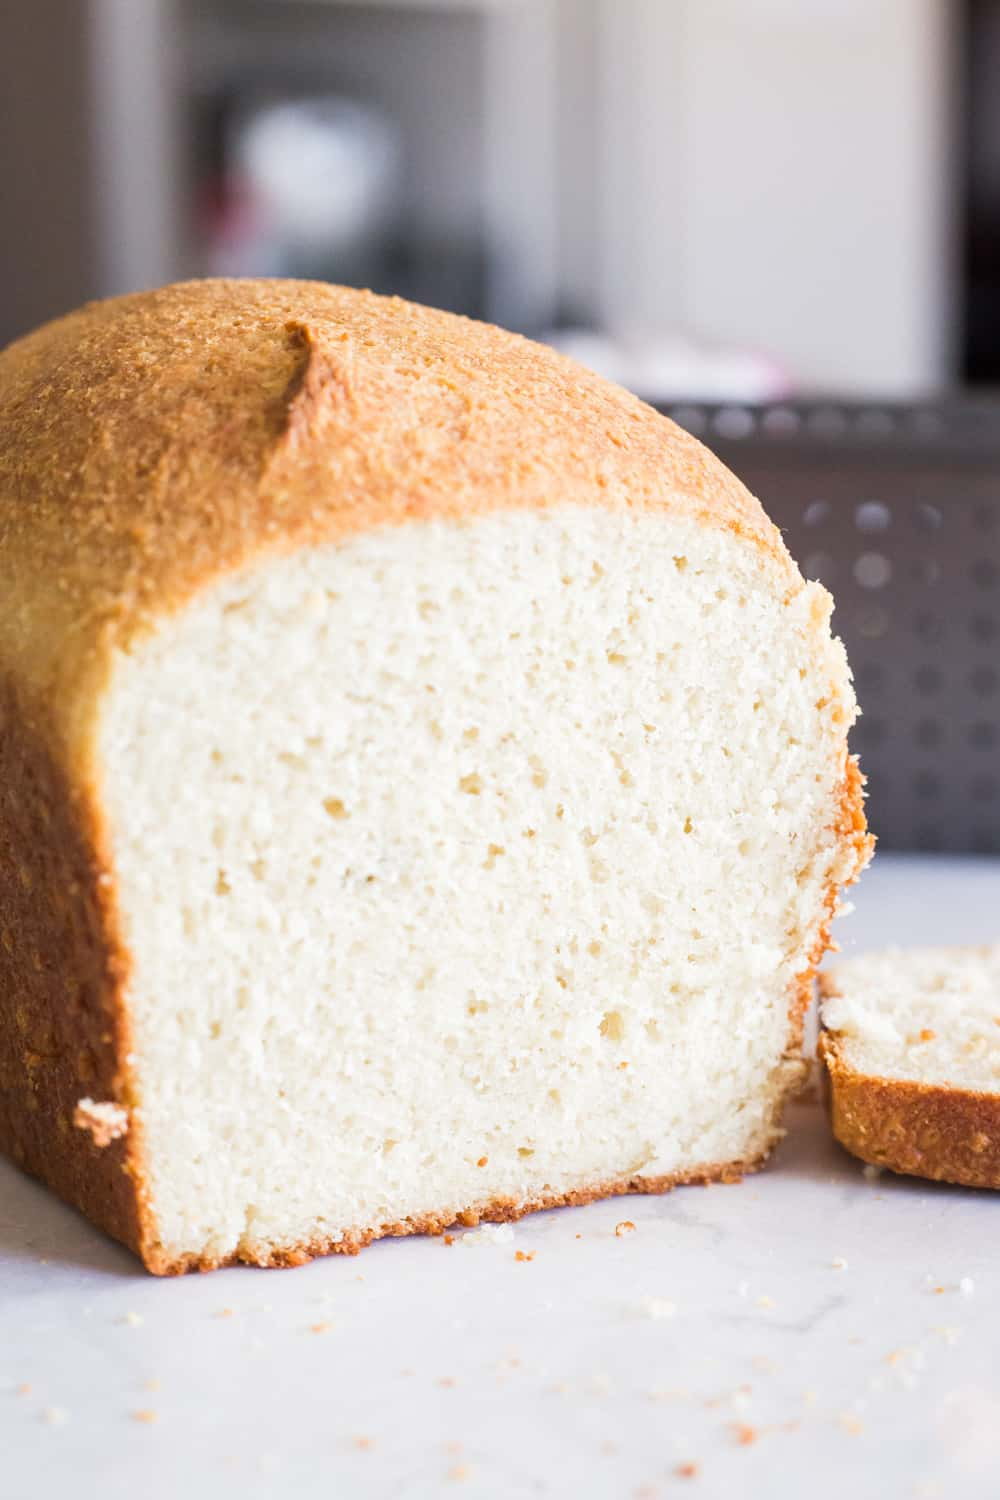 Keto Bread With Vital Wheat Gluten The Hungry Elephant